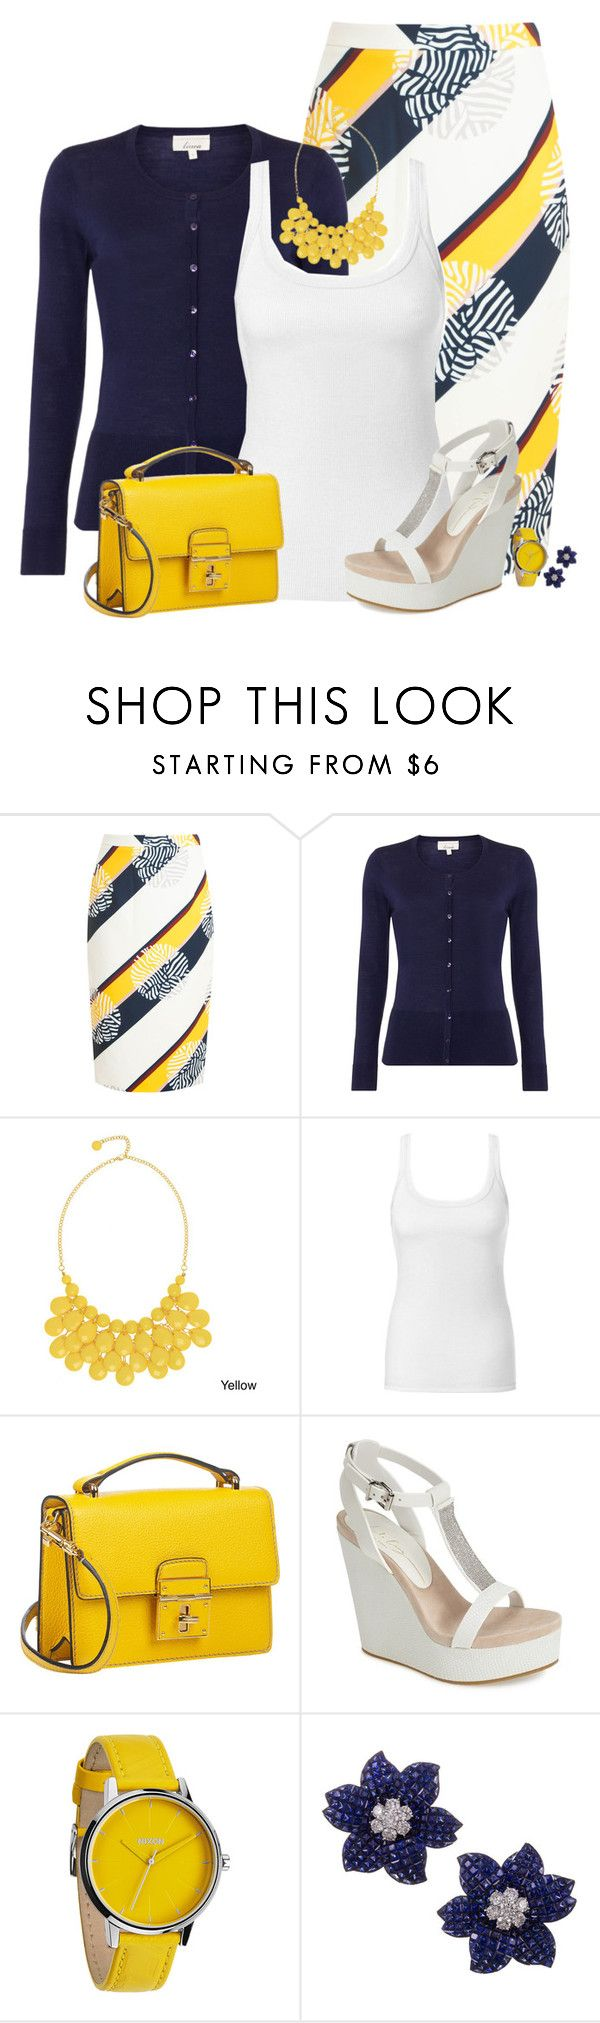 """""""Suddenly Life Has New Meaning to Me"""" by loocreve ❤ liked on Polyvore featuring Raoul, Alexa Starr, Intimissimi, Dolce&Gabbana, Lola Cruz and Nixon"""